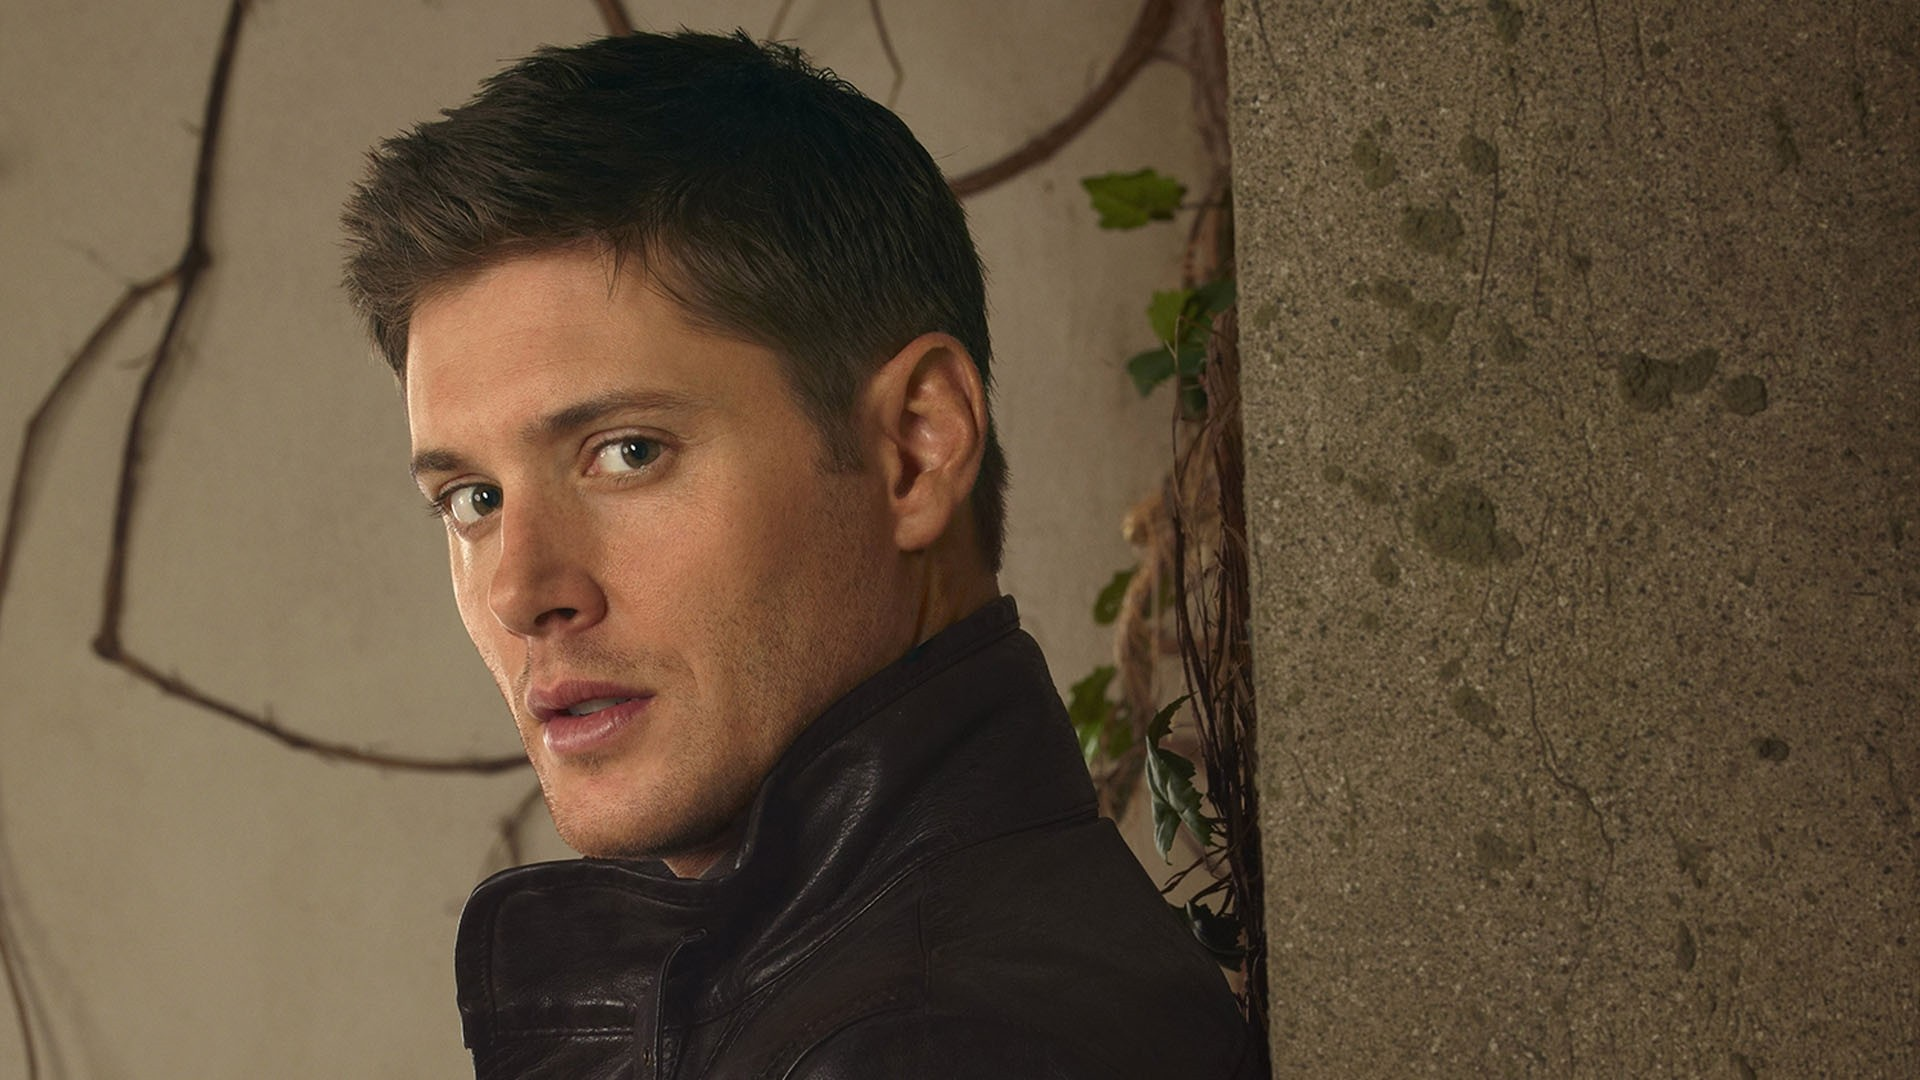 Jensen Ackles Wallpaper Free Download